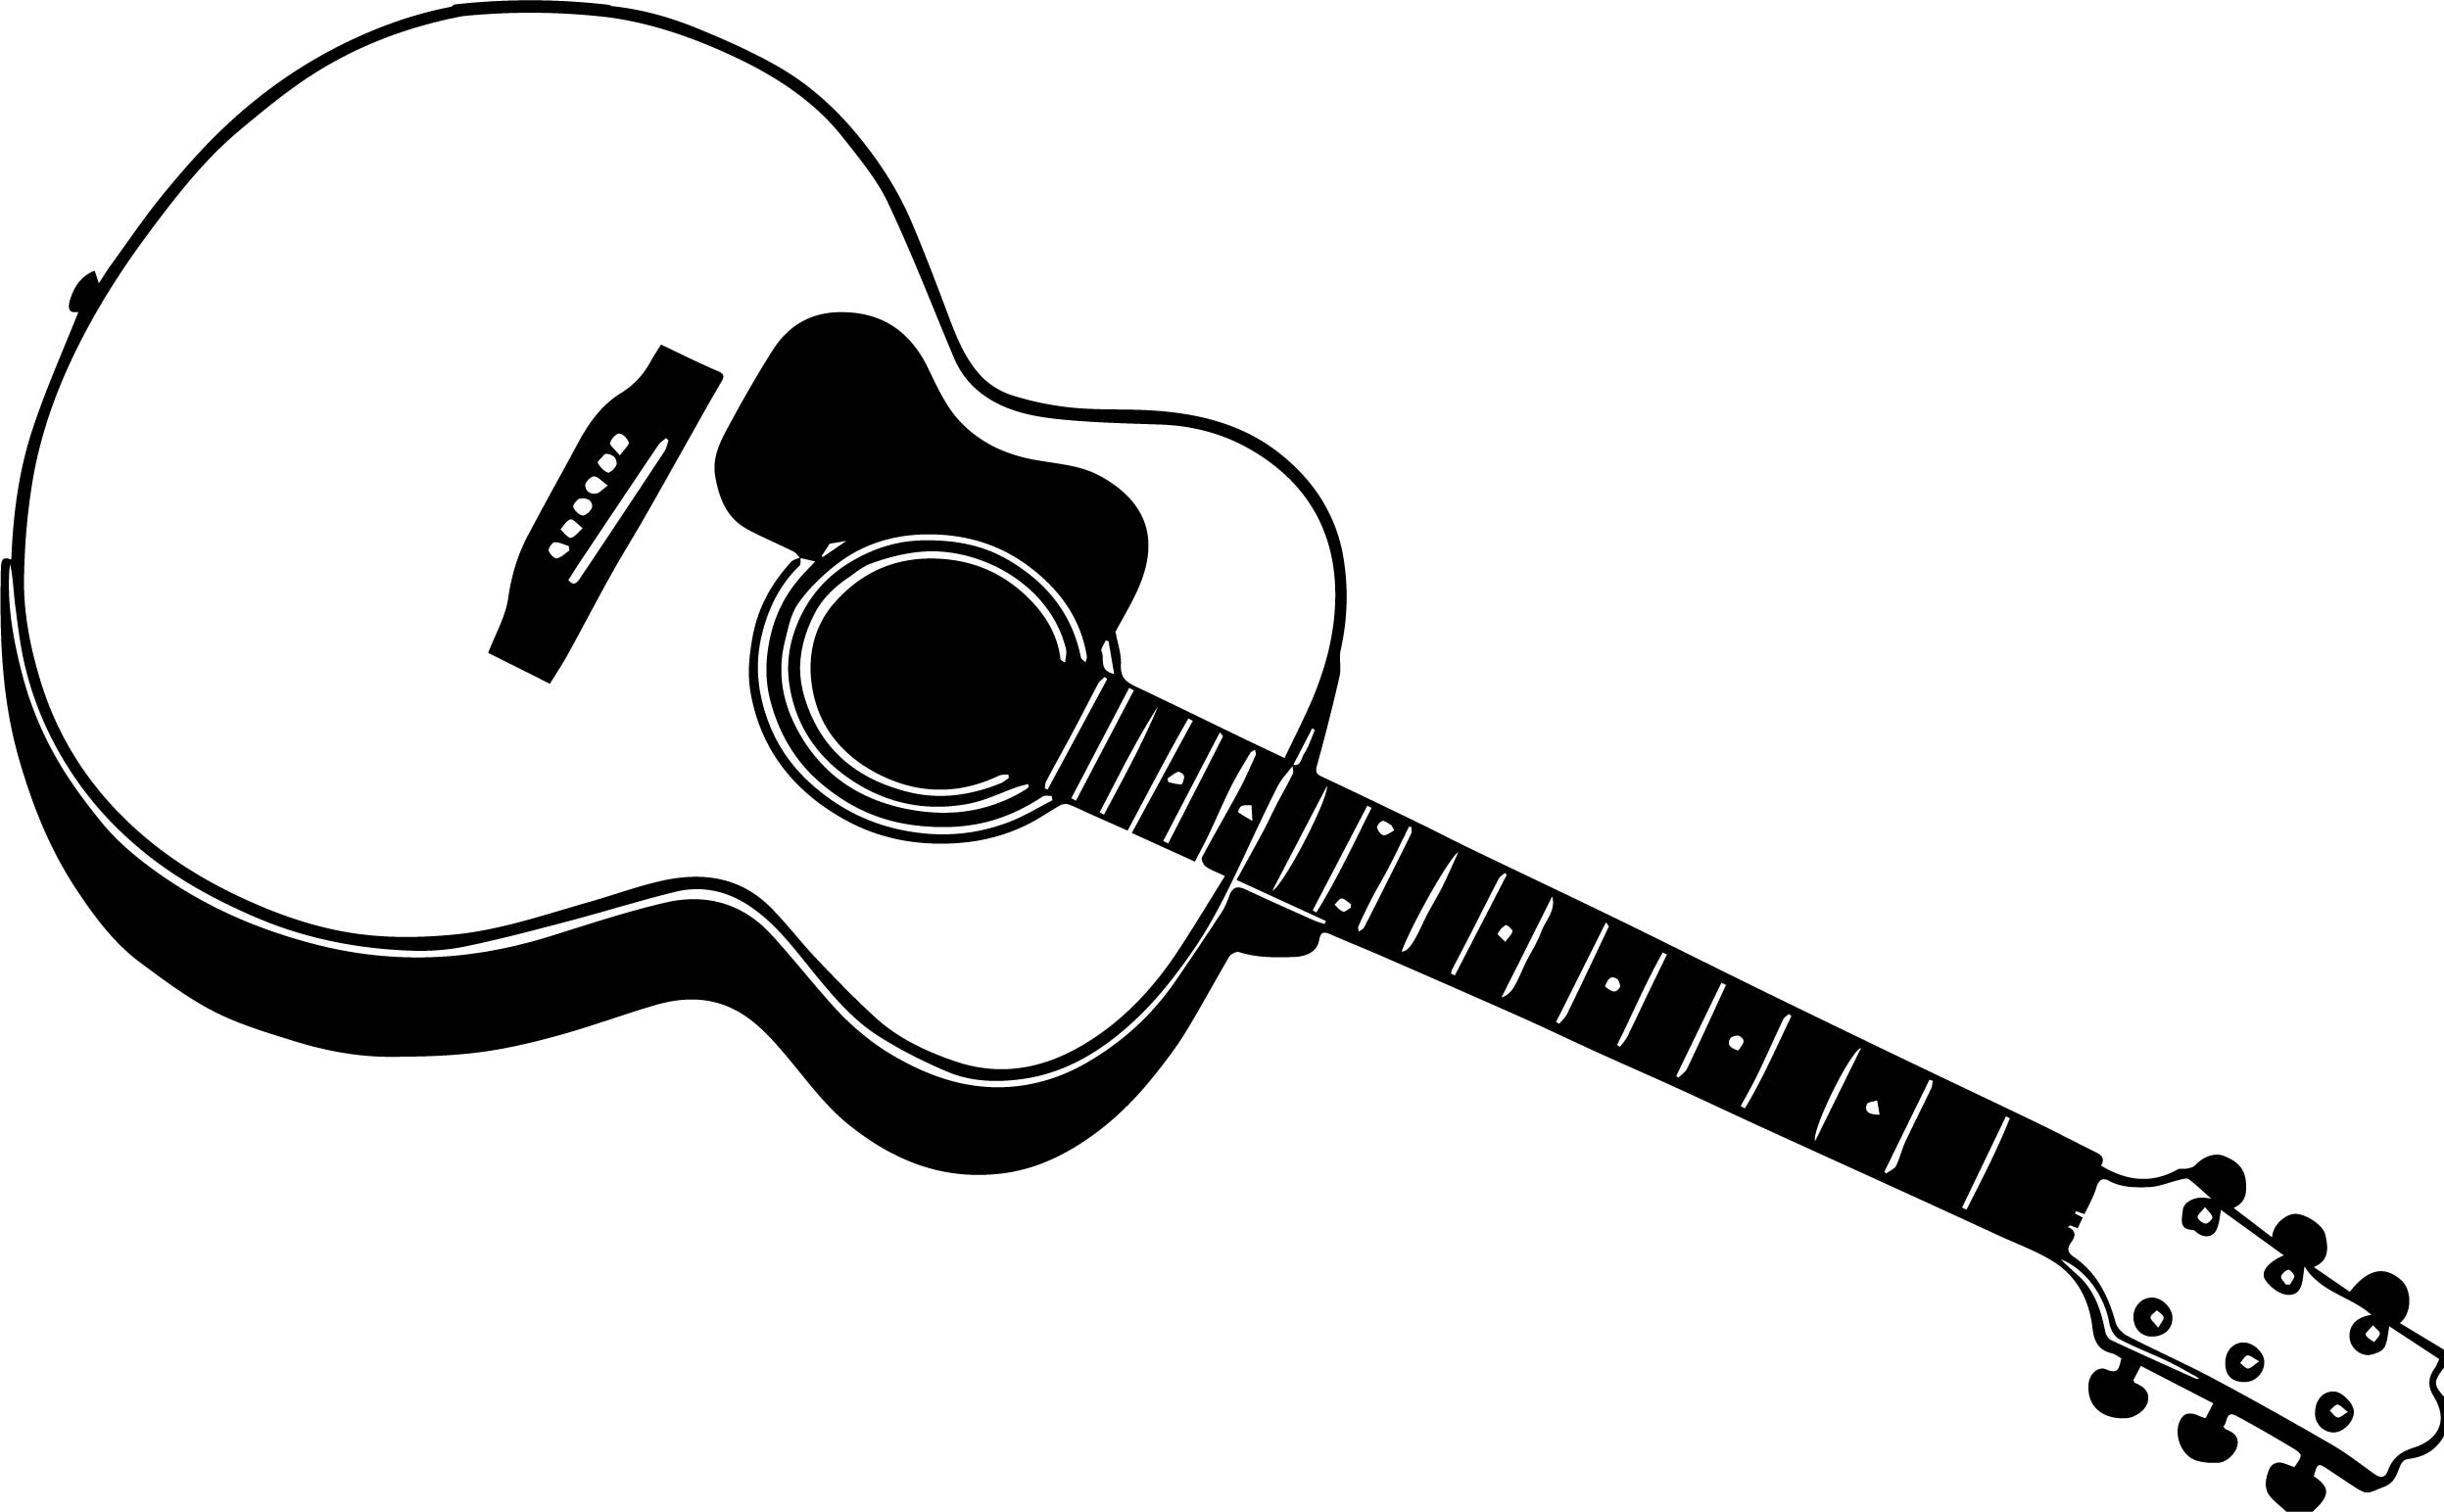 good guitar coloring page - Guitar Coloring Pages